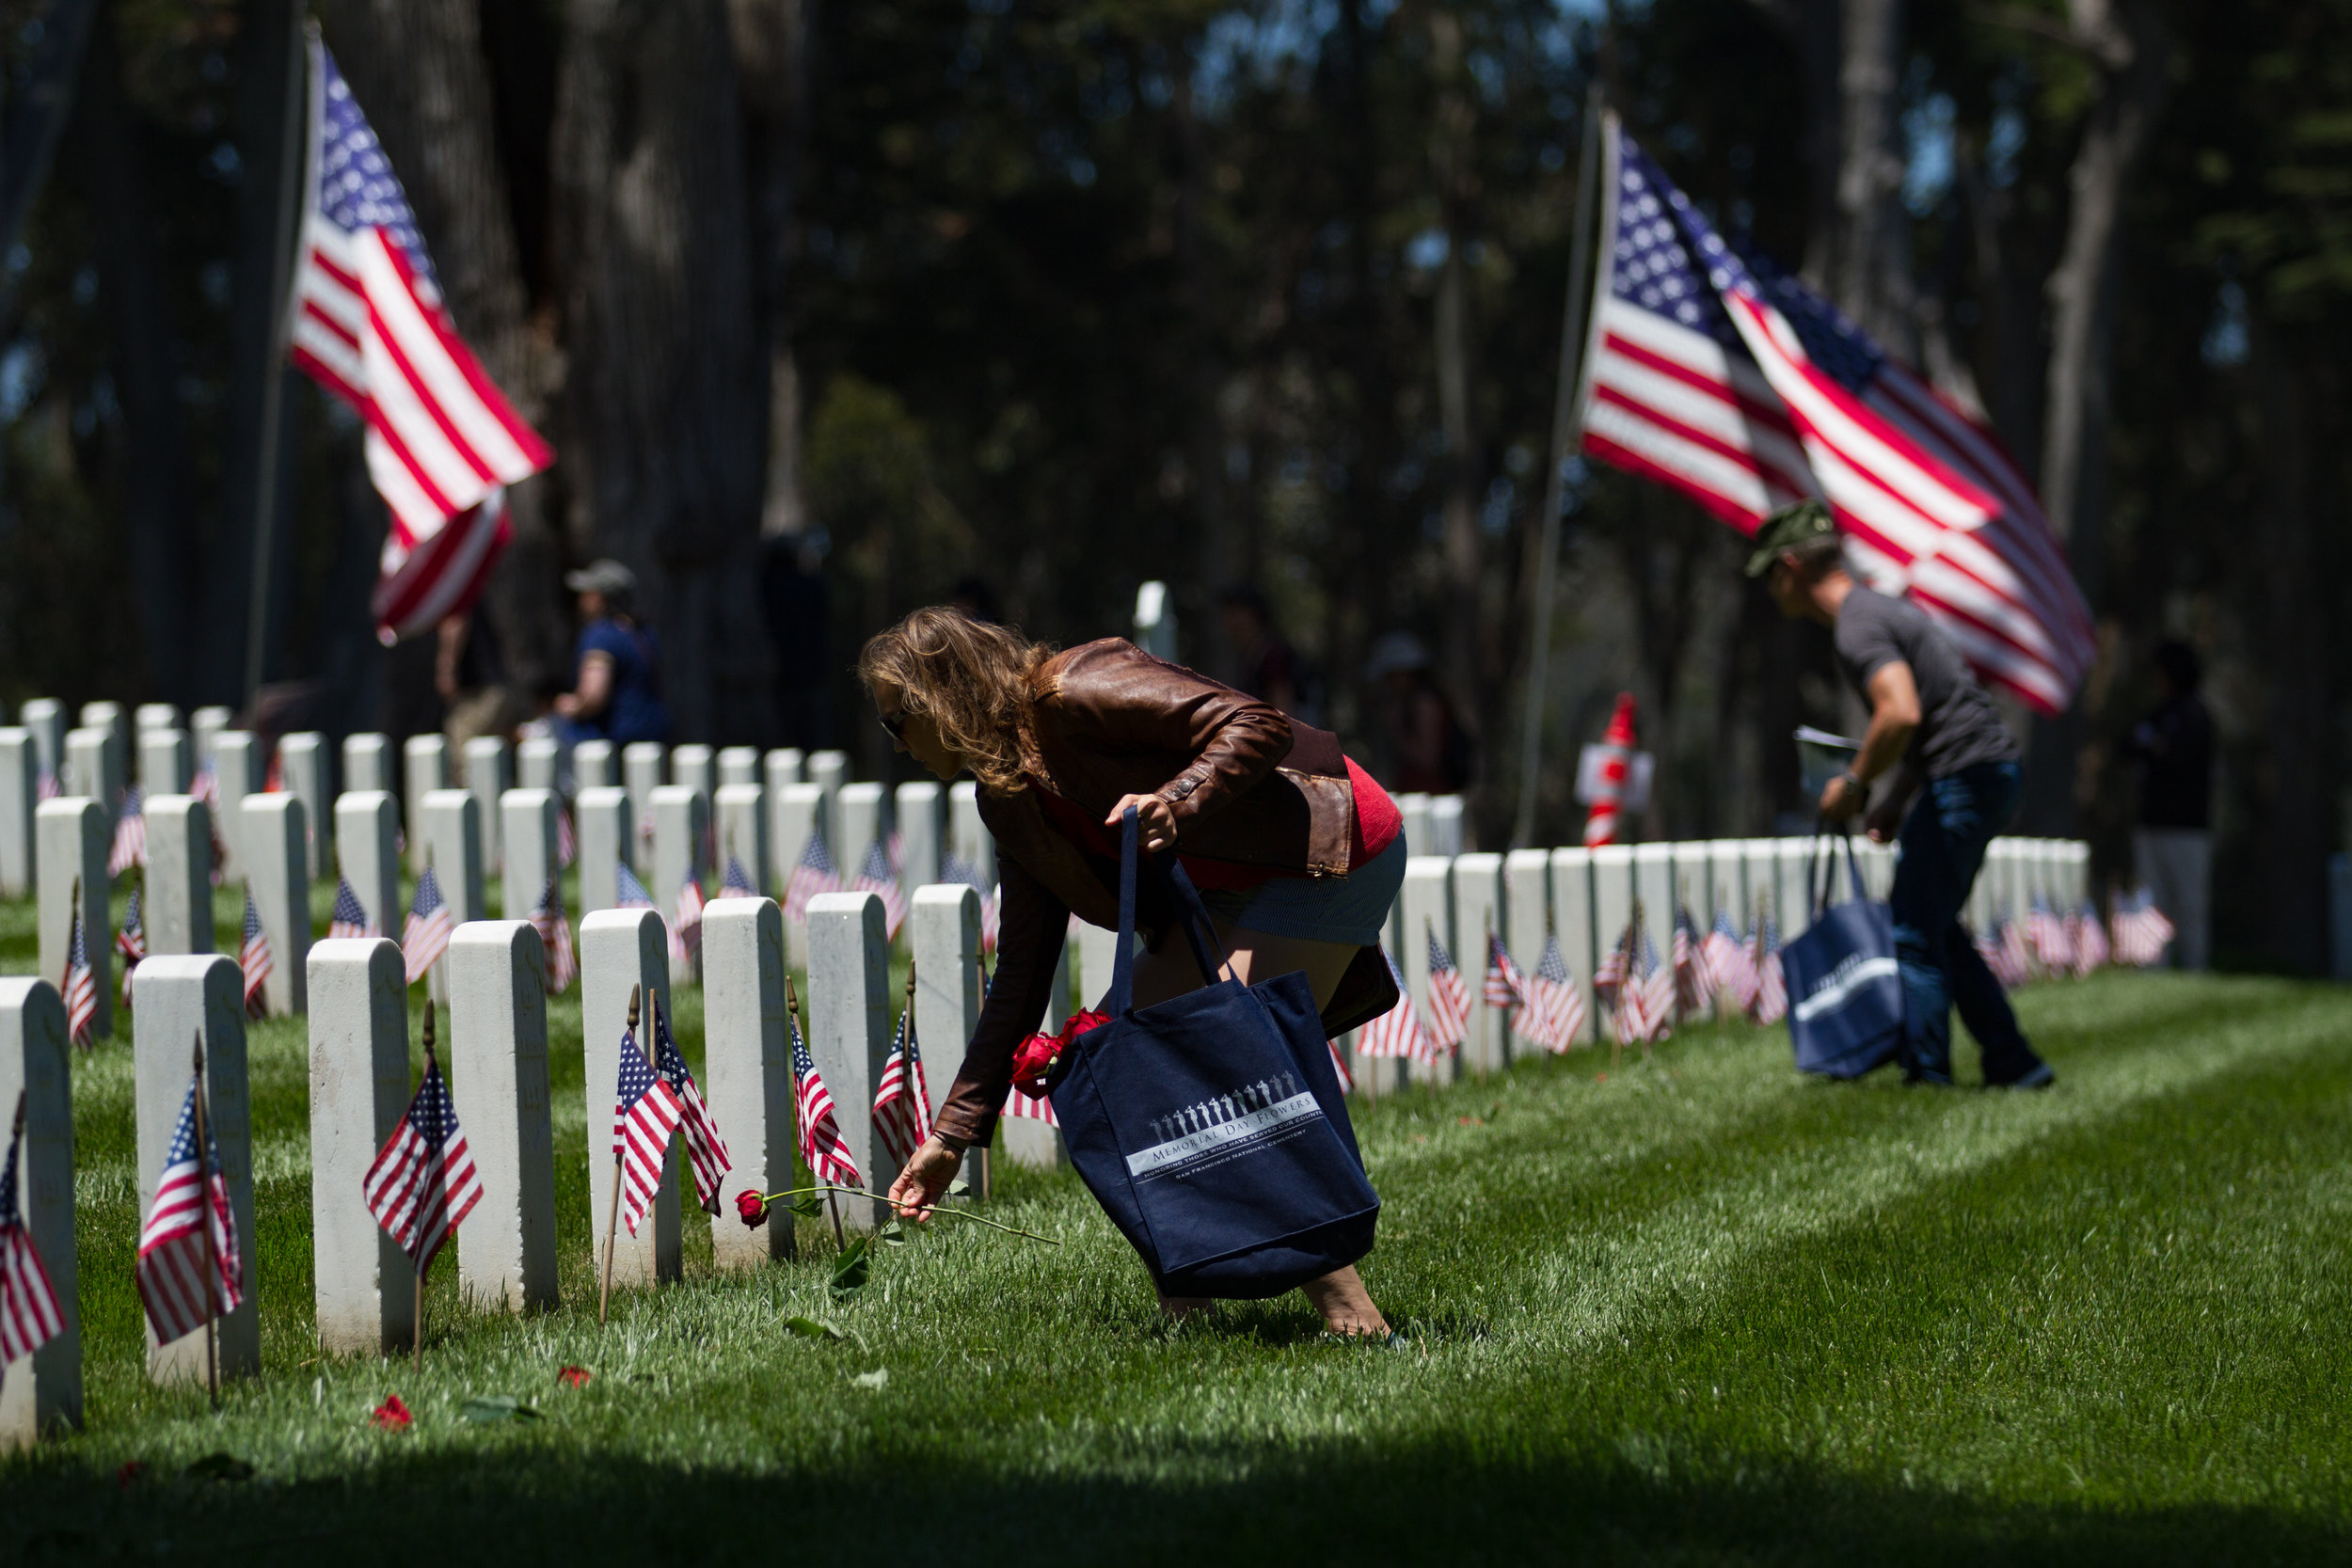 Attendees of the 2018 Memorial Day Commemoration at the Presidio in San Francisco lay roses across the graves of fallen service members. The 150th anniversary pays homage to the over 1 million Americans killed while serving in the armed forces and the annual commemoration is the largest in the West. Services began with a 21 gun salute from the U.S. Army's Pacific Division 75th Training Command and featured speakers Senator Dianne Feinstein, Lieutenant Governor Gavin Newsom, and San Francisco Mayor Mark Farrell.